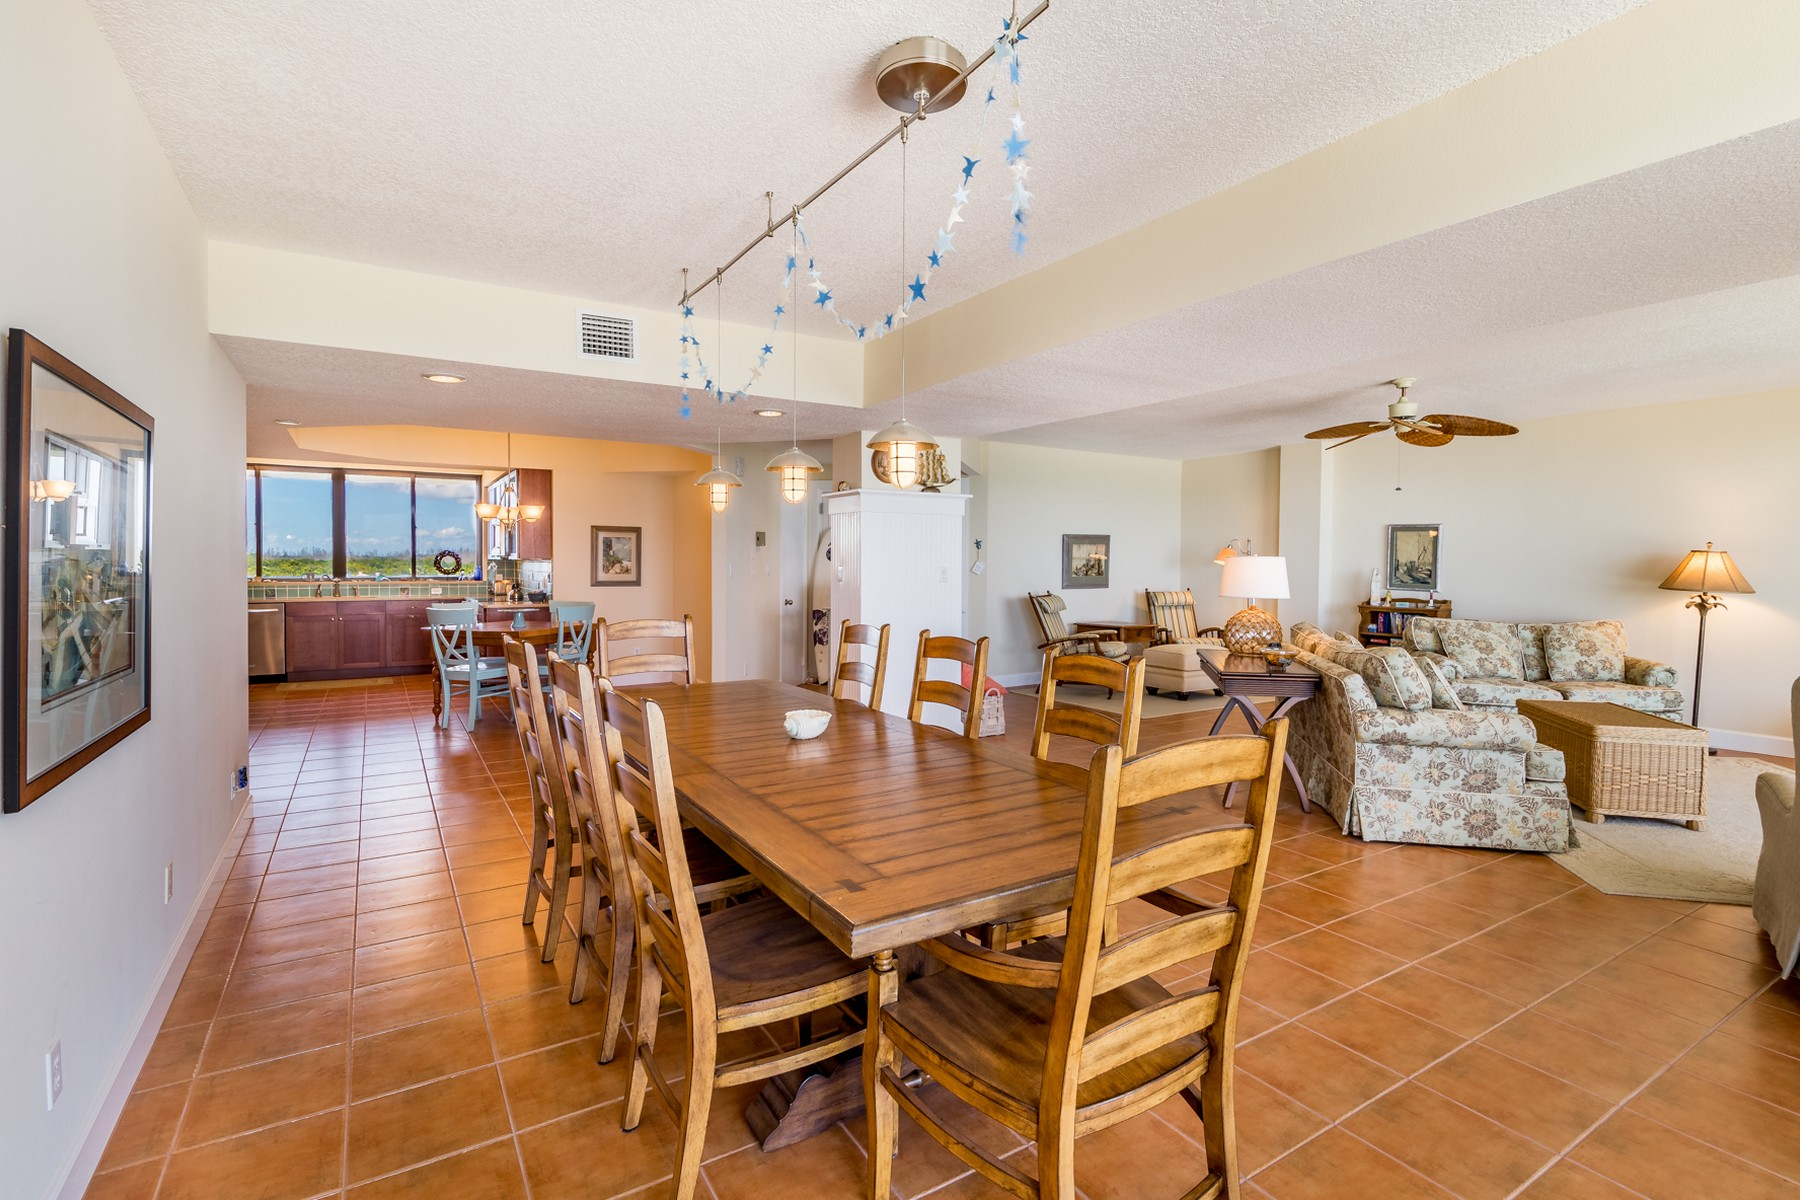 Additional photo for property listing at Gorgeous Oceanfront Villa with Panoramic Views 7415 Aquarina Beach Drive #302 Melbourne Beach, Florida 32951 United States